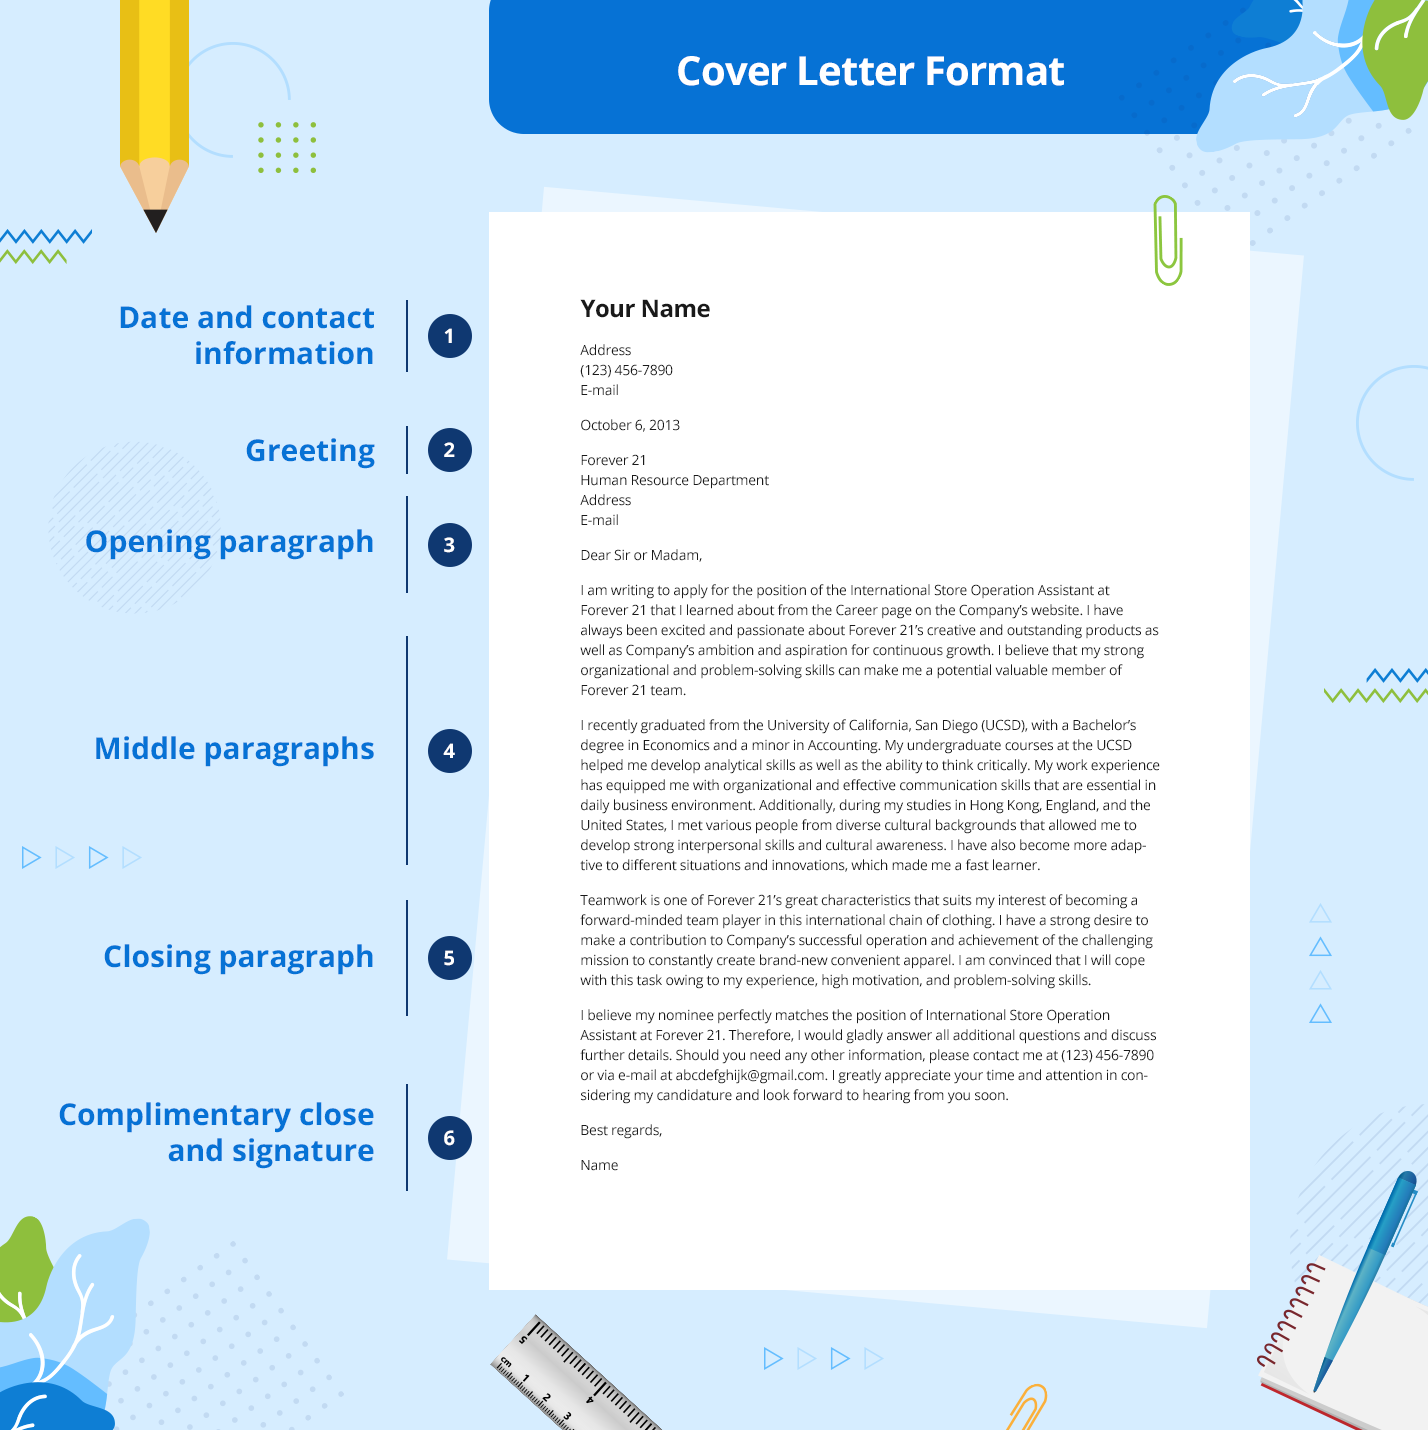 Format a Cover Letter